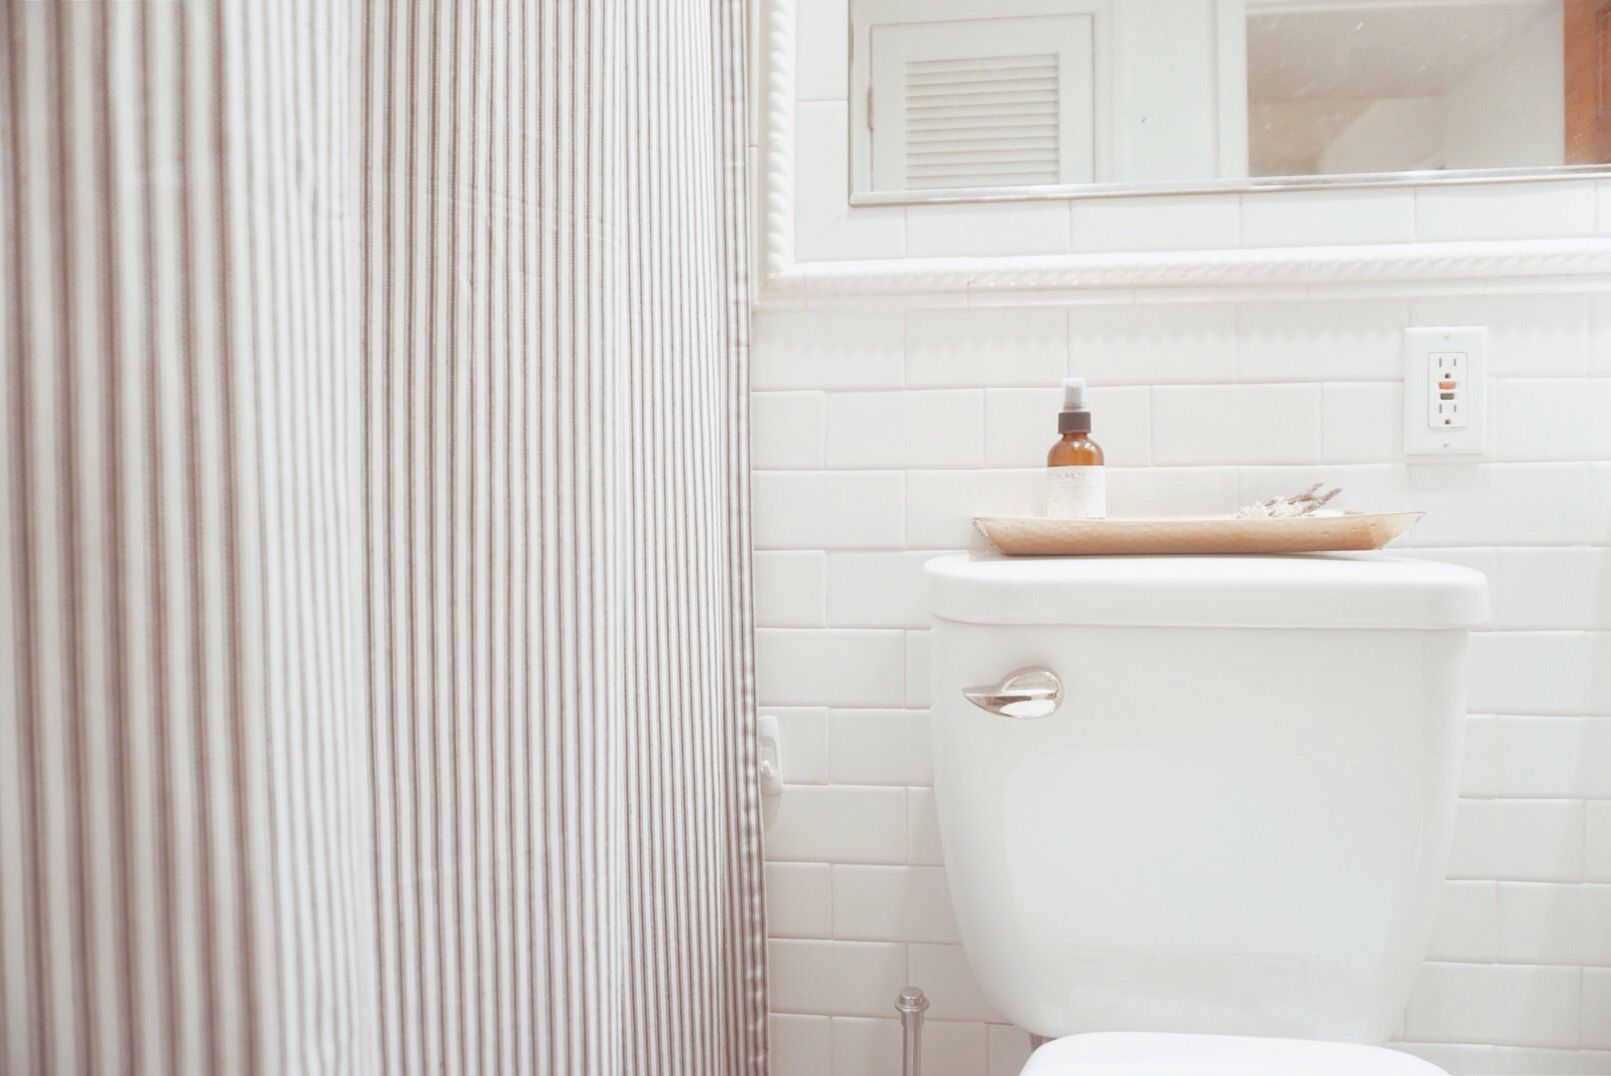 Problems going to the bathroom - Replace Or Repair Dealing With A Cracked Toilet